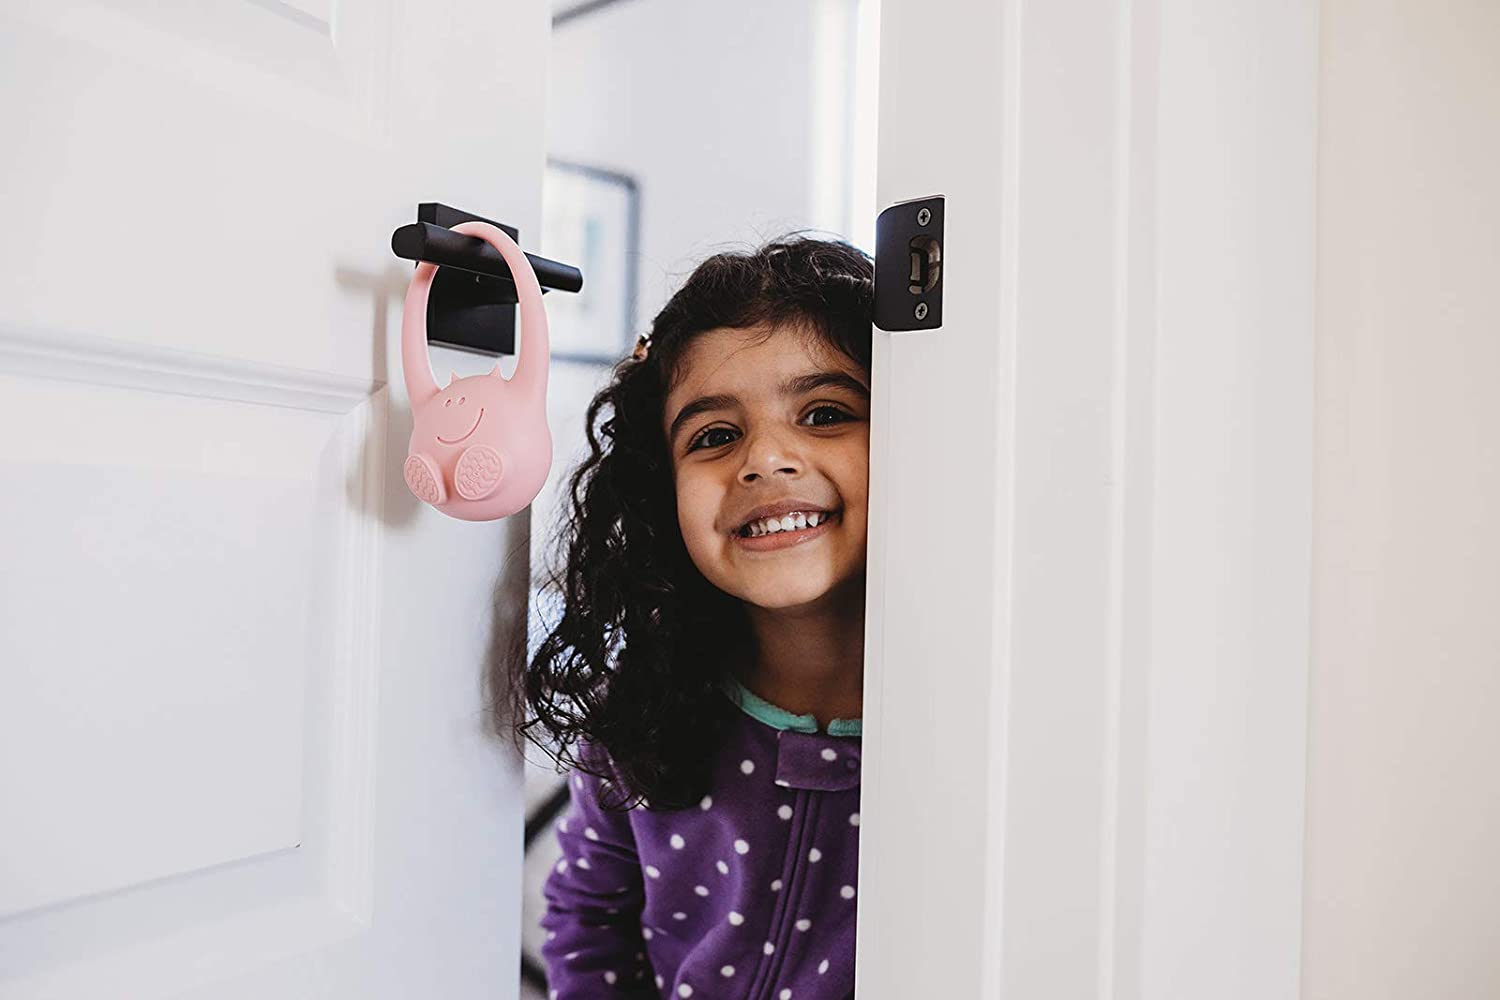 Alerts You When Your Child Leaves Their Bedroom Motion Sensor Device Toddlermonitor The Next Phase of Baby Monitor Smartphone Enabled Door Hanging Pink